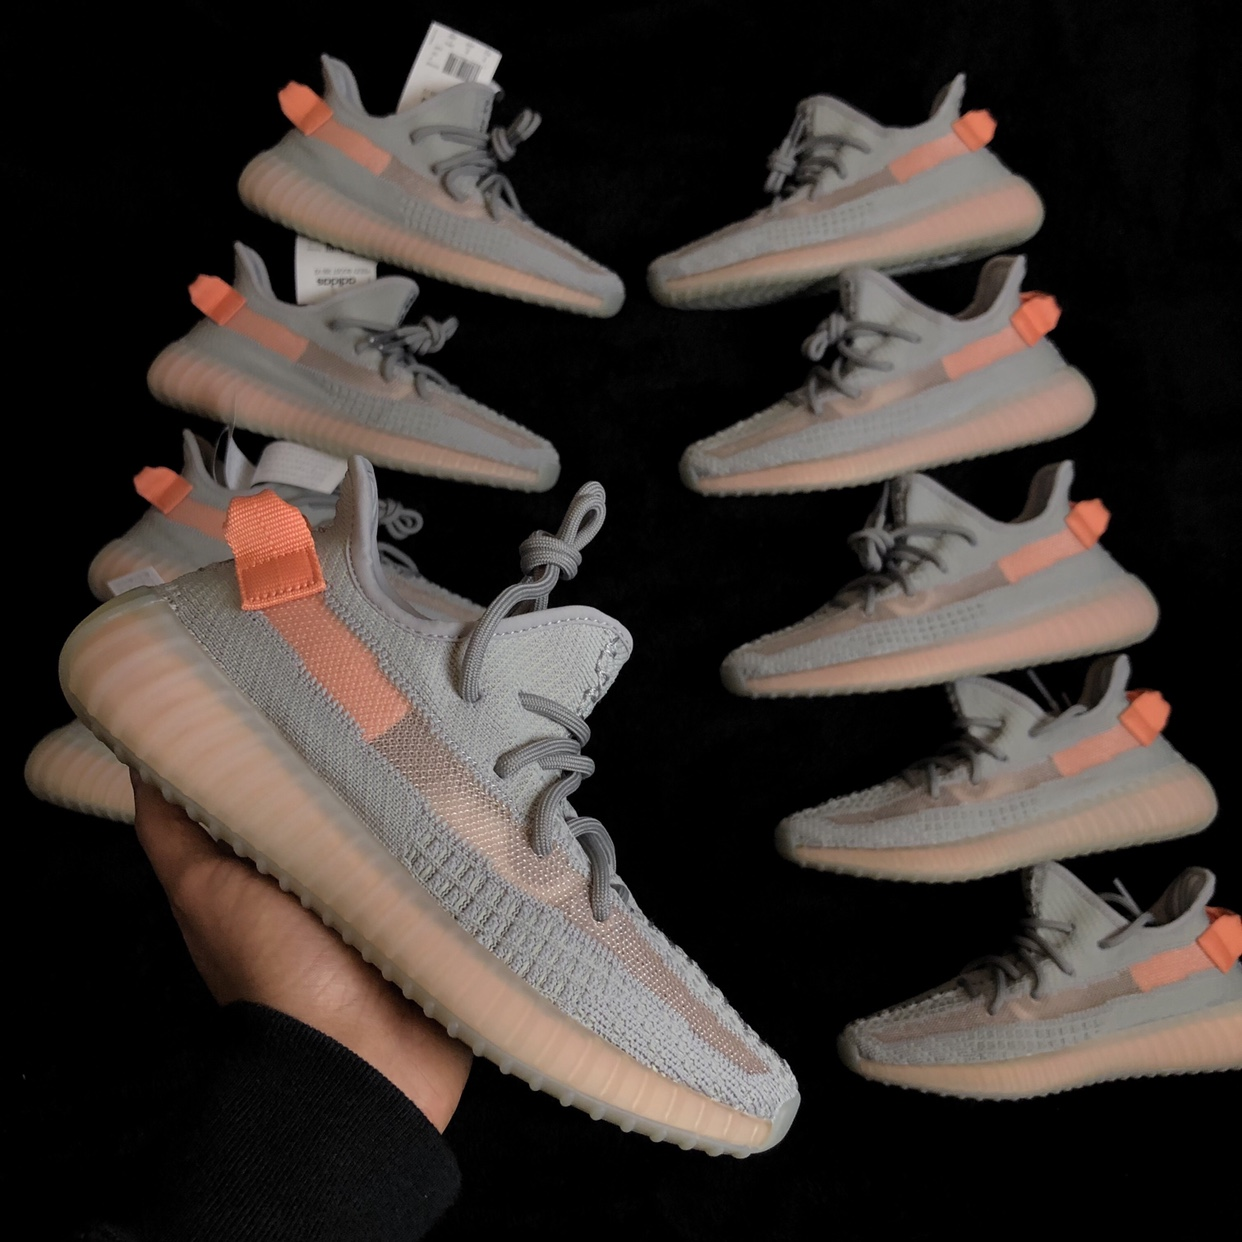 Details about Adidas Yeezy Boost 350 V2 True Form TRFRM UK 8 Brand New